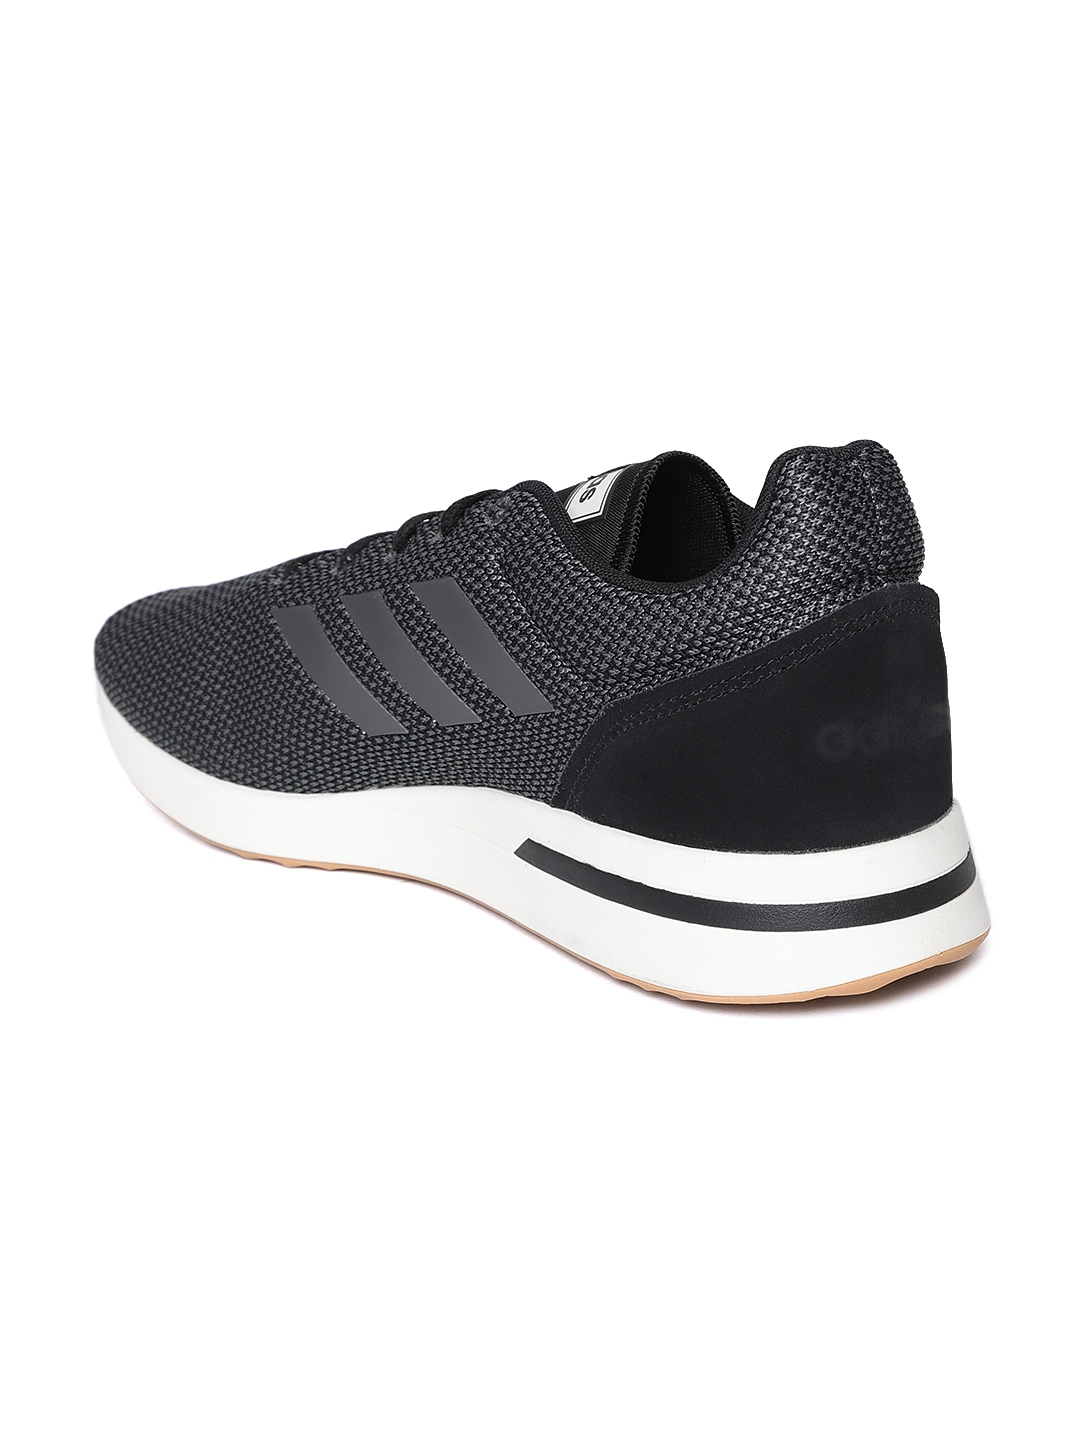 sports shoes eed6b b358c Adidas Men Black   Grey Run 70S Woven Design Running Shoes